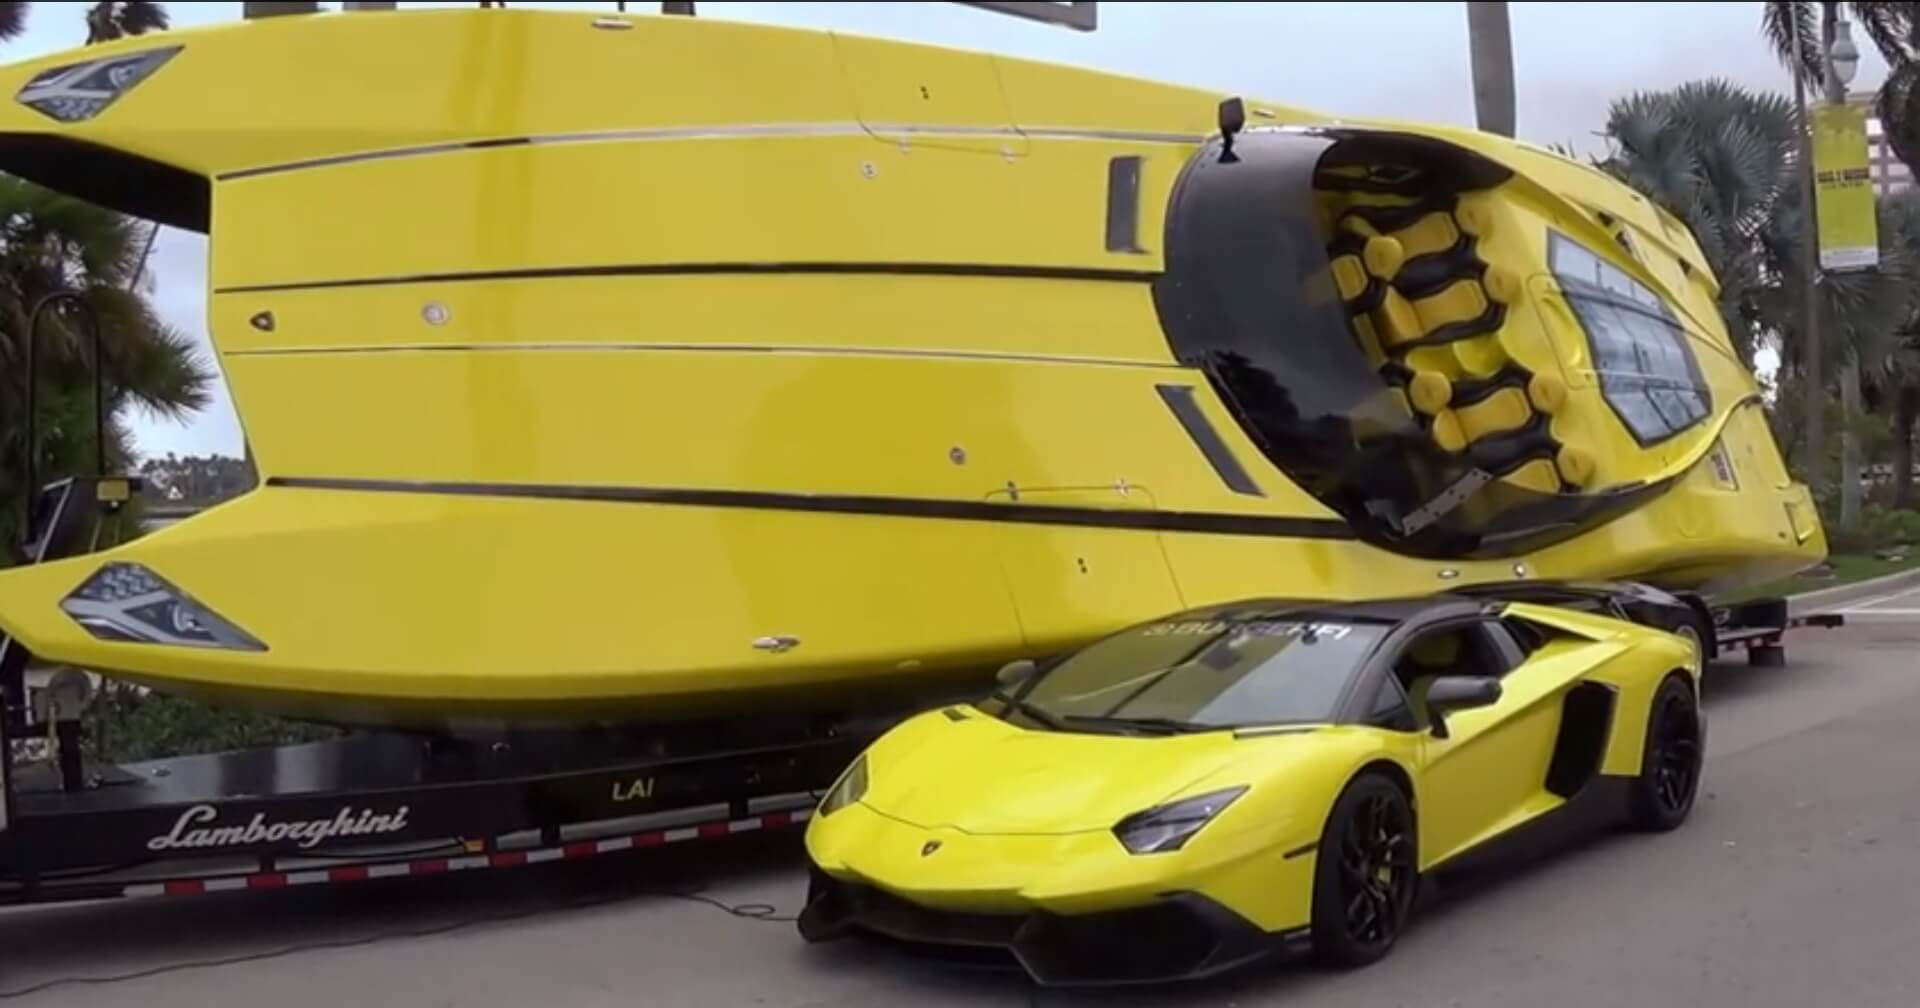 Things you didn't know about Lamborghini; Aventador Boat